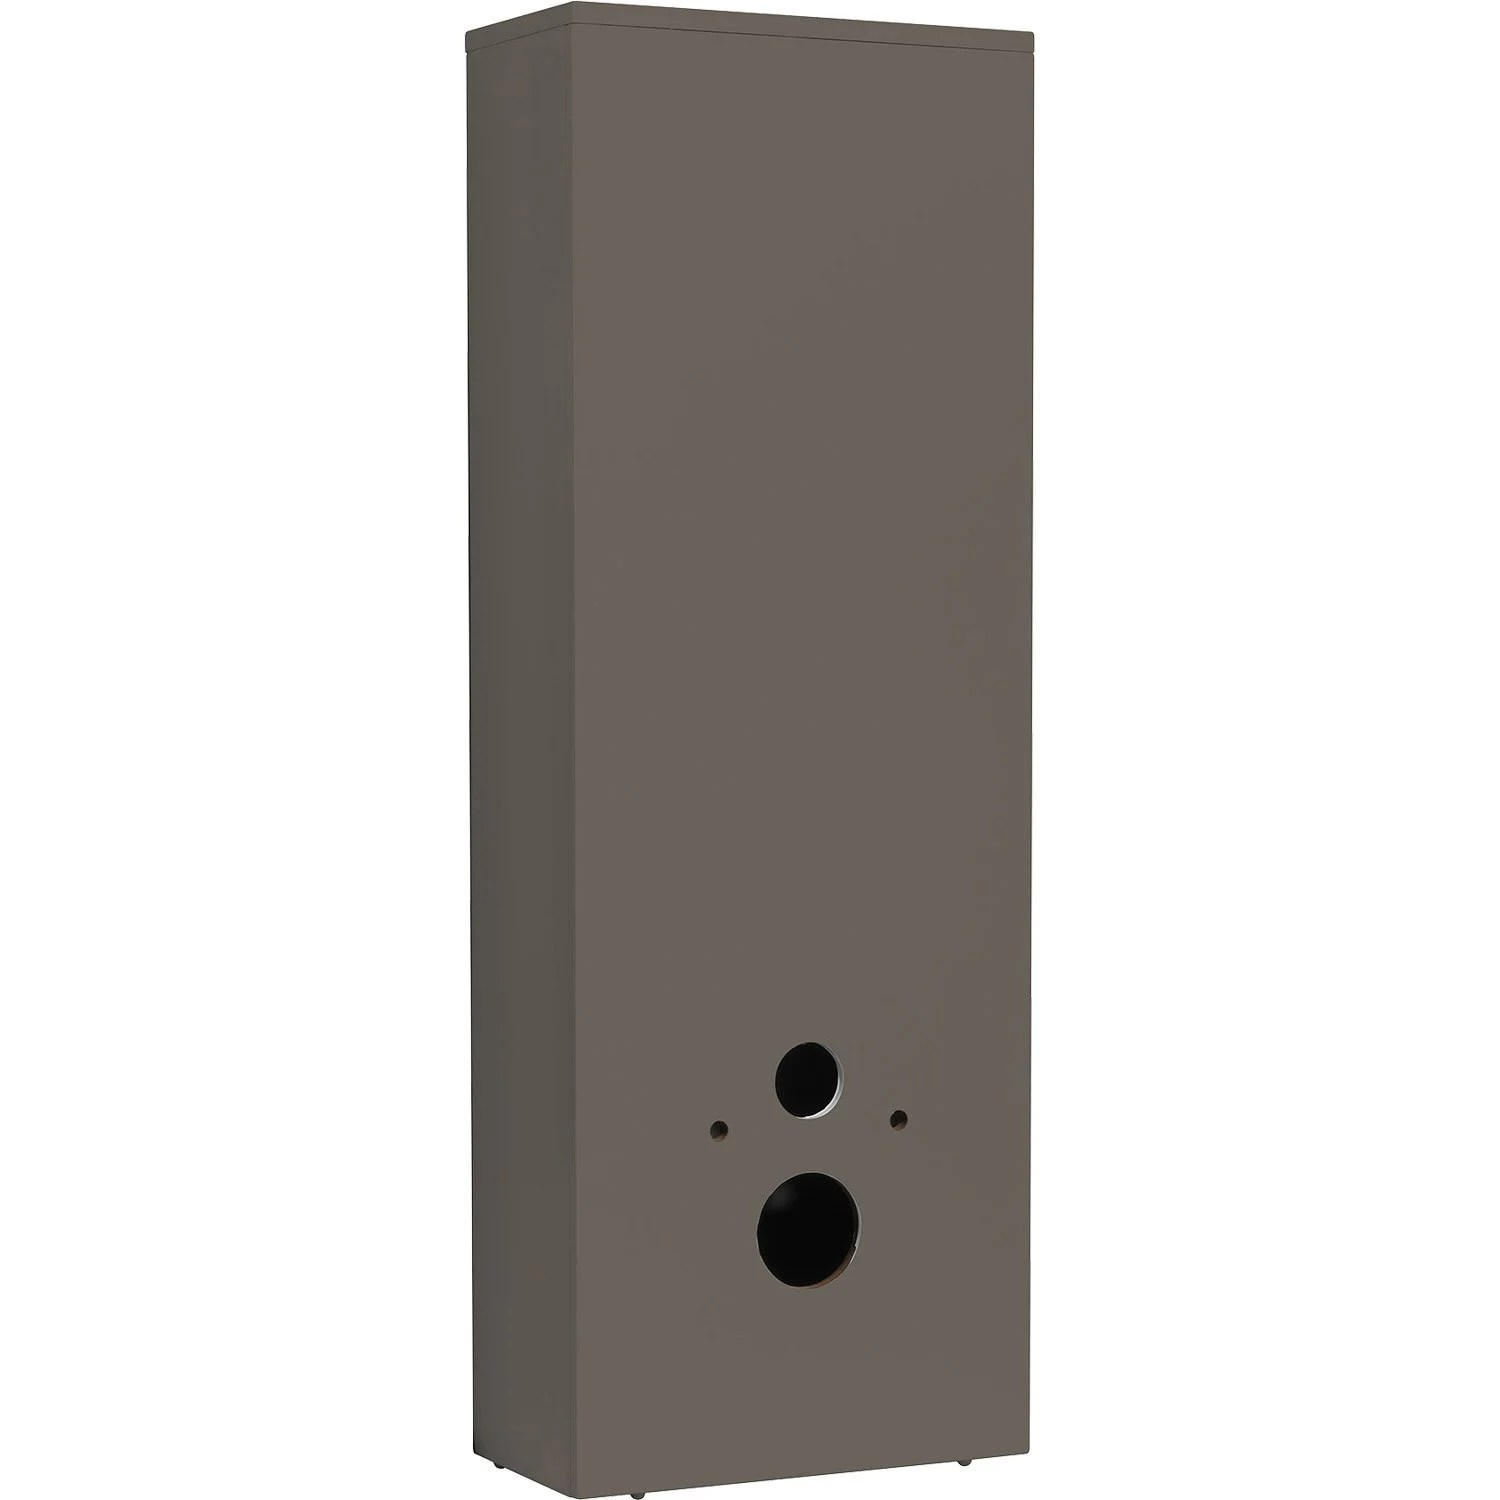 Habillage Wc Suspendu Grohe Leroy Merlin Coffrage Pour Wc Suspendu L 45 5 X H 130 6 X P 24 Cm Taupe Sensea Remix